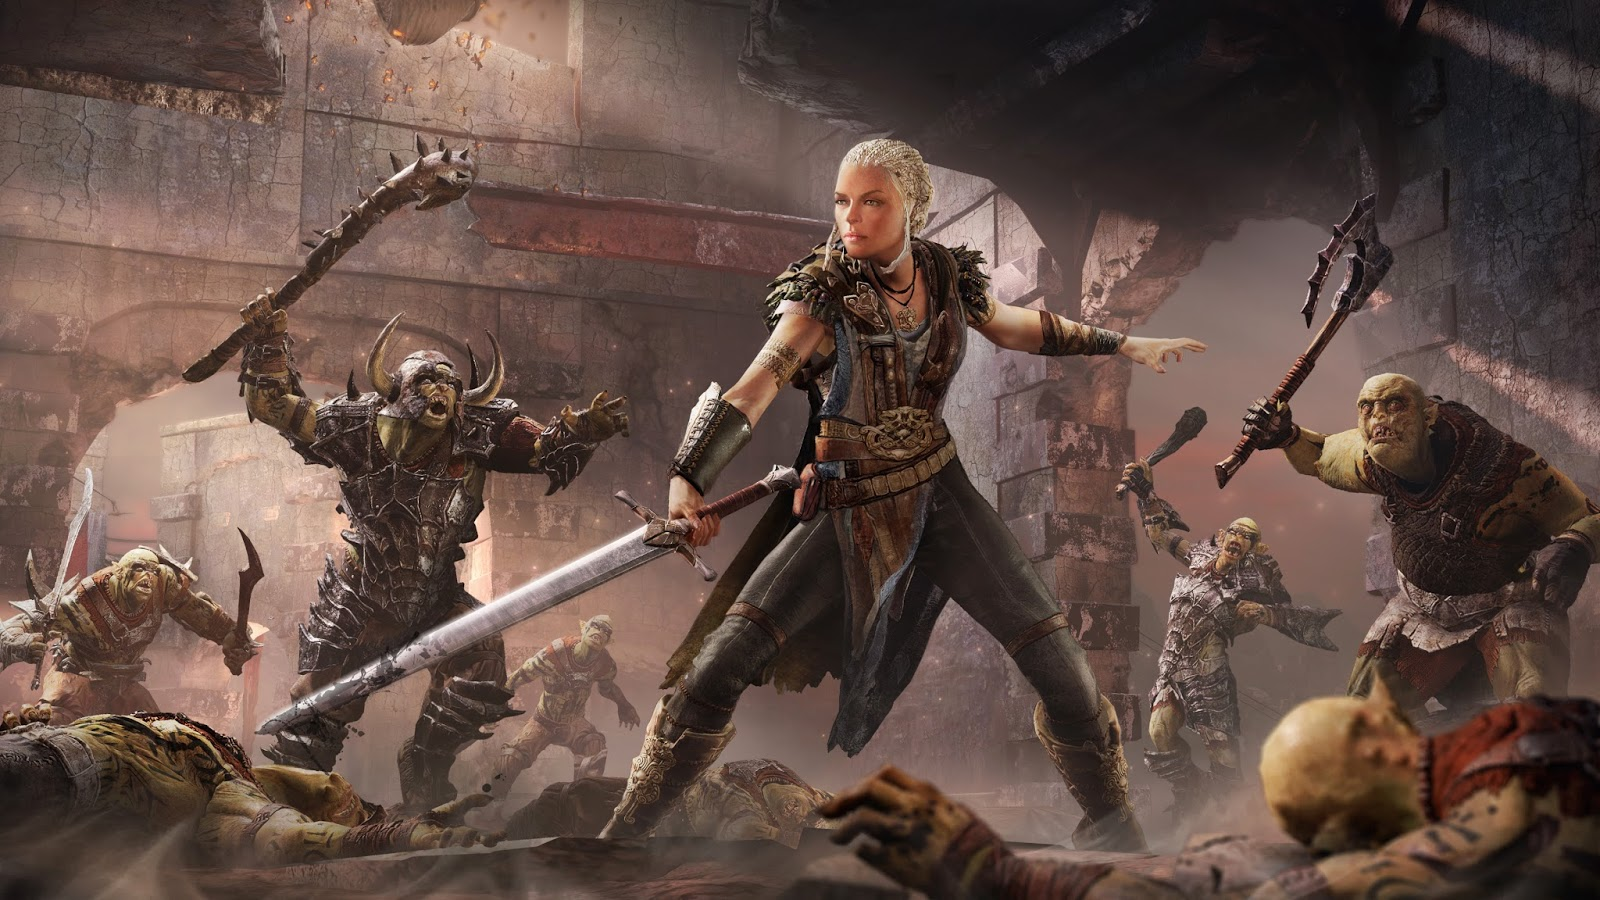 http://psgamespower.blogspot.com/2014/11/middle-earth-shadow-of-mordor-novo-dlc.html